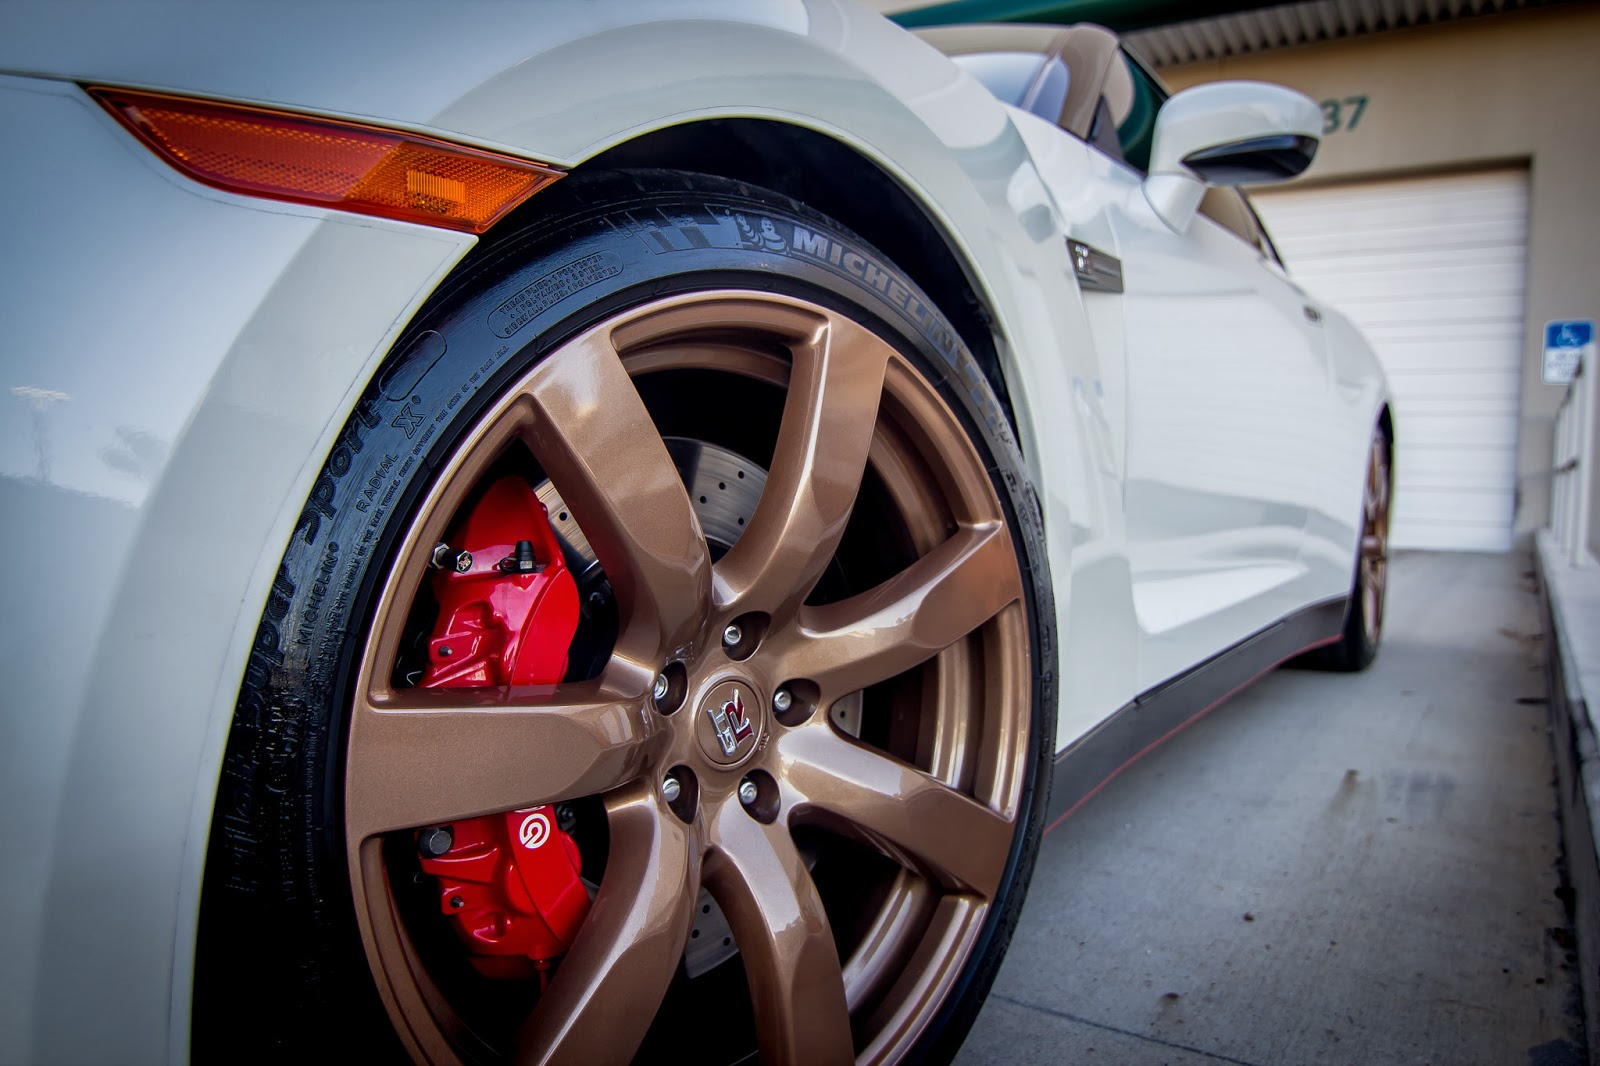 2010 Nissan GTR Gold Rims and Red Calipers